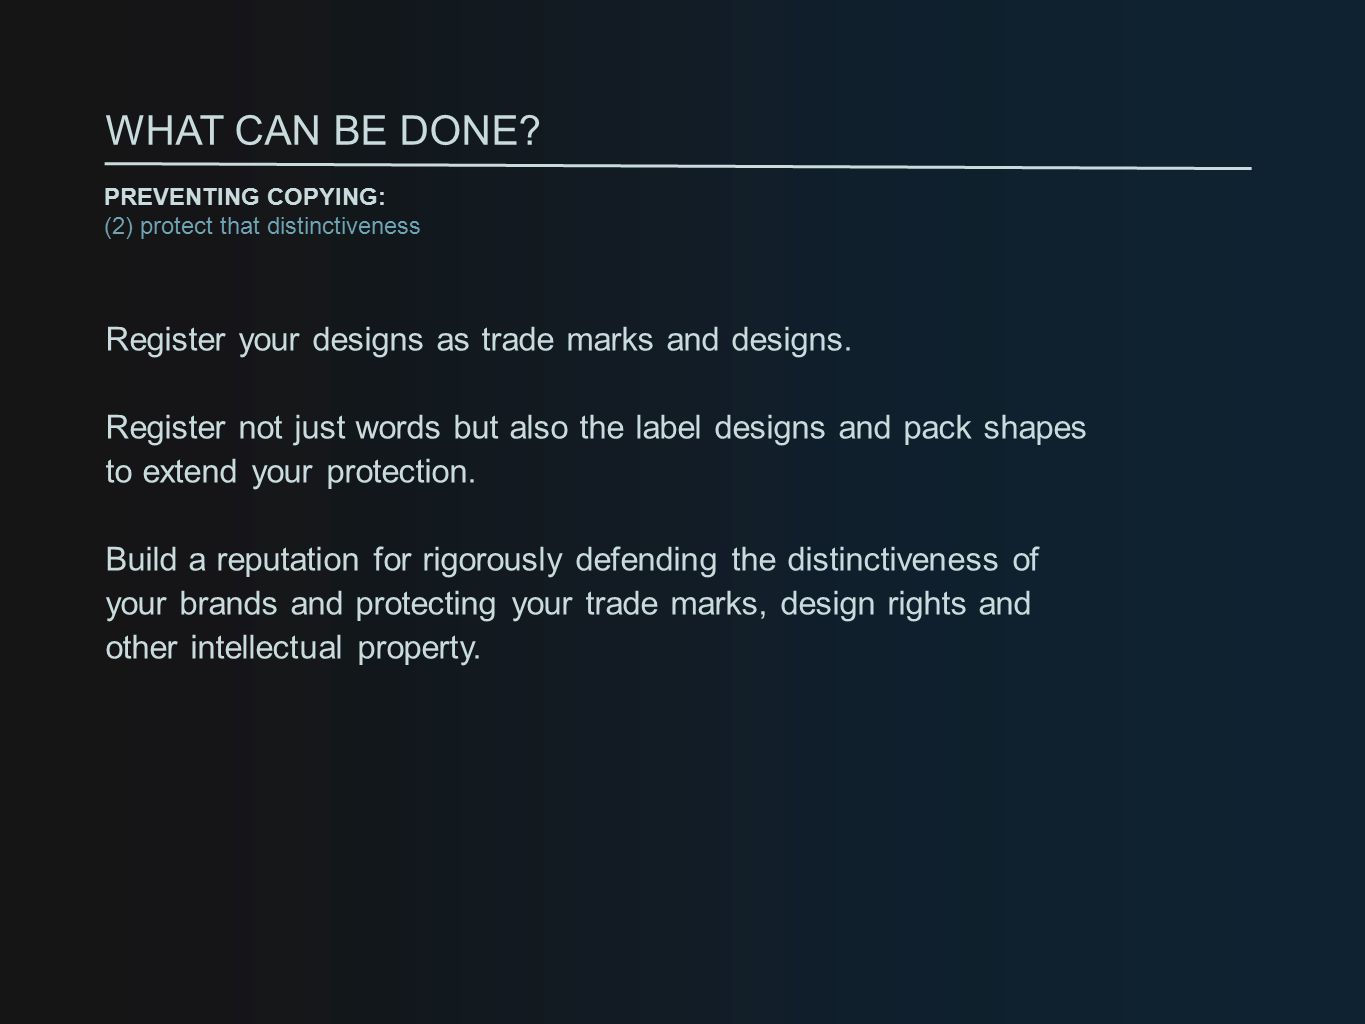 Register your designs as trade marks and designs.